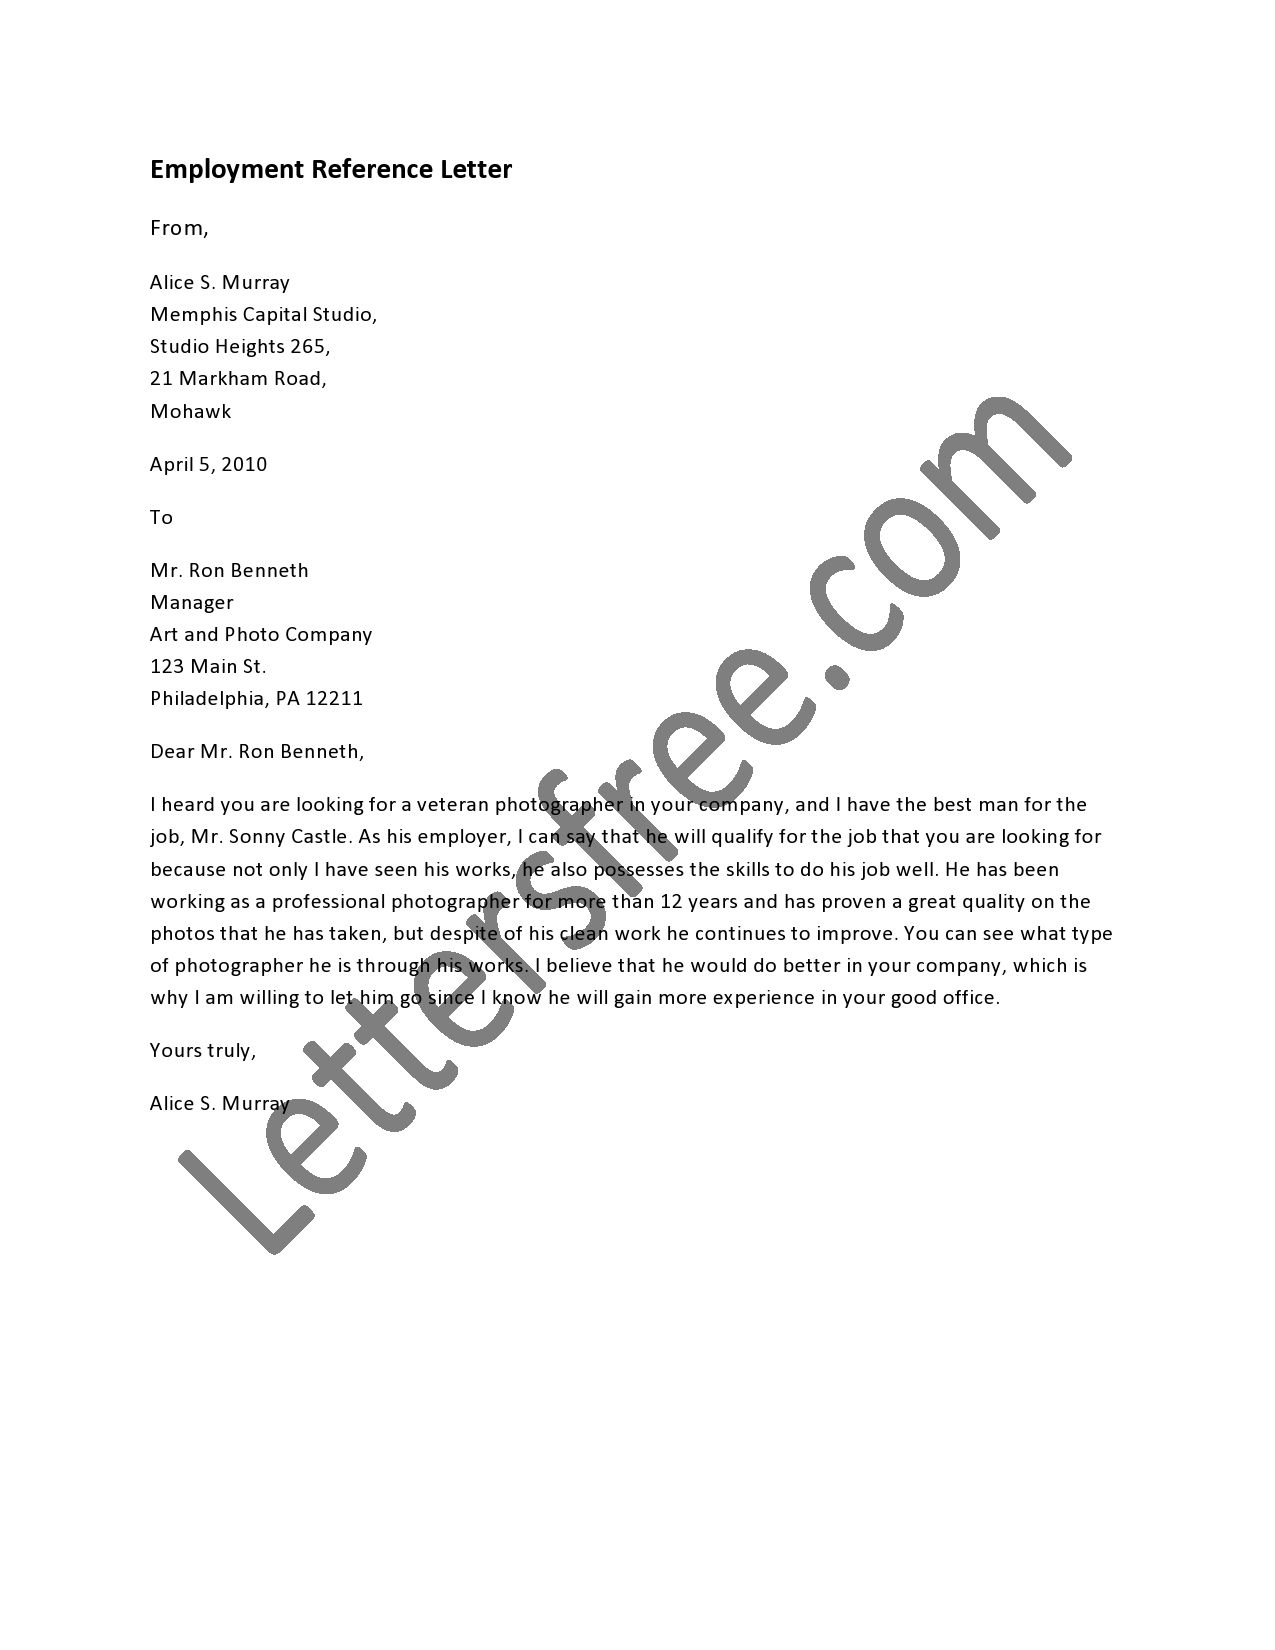 A Reference Letter Is A Professional Letter Written By A Previous